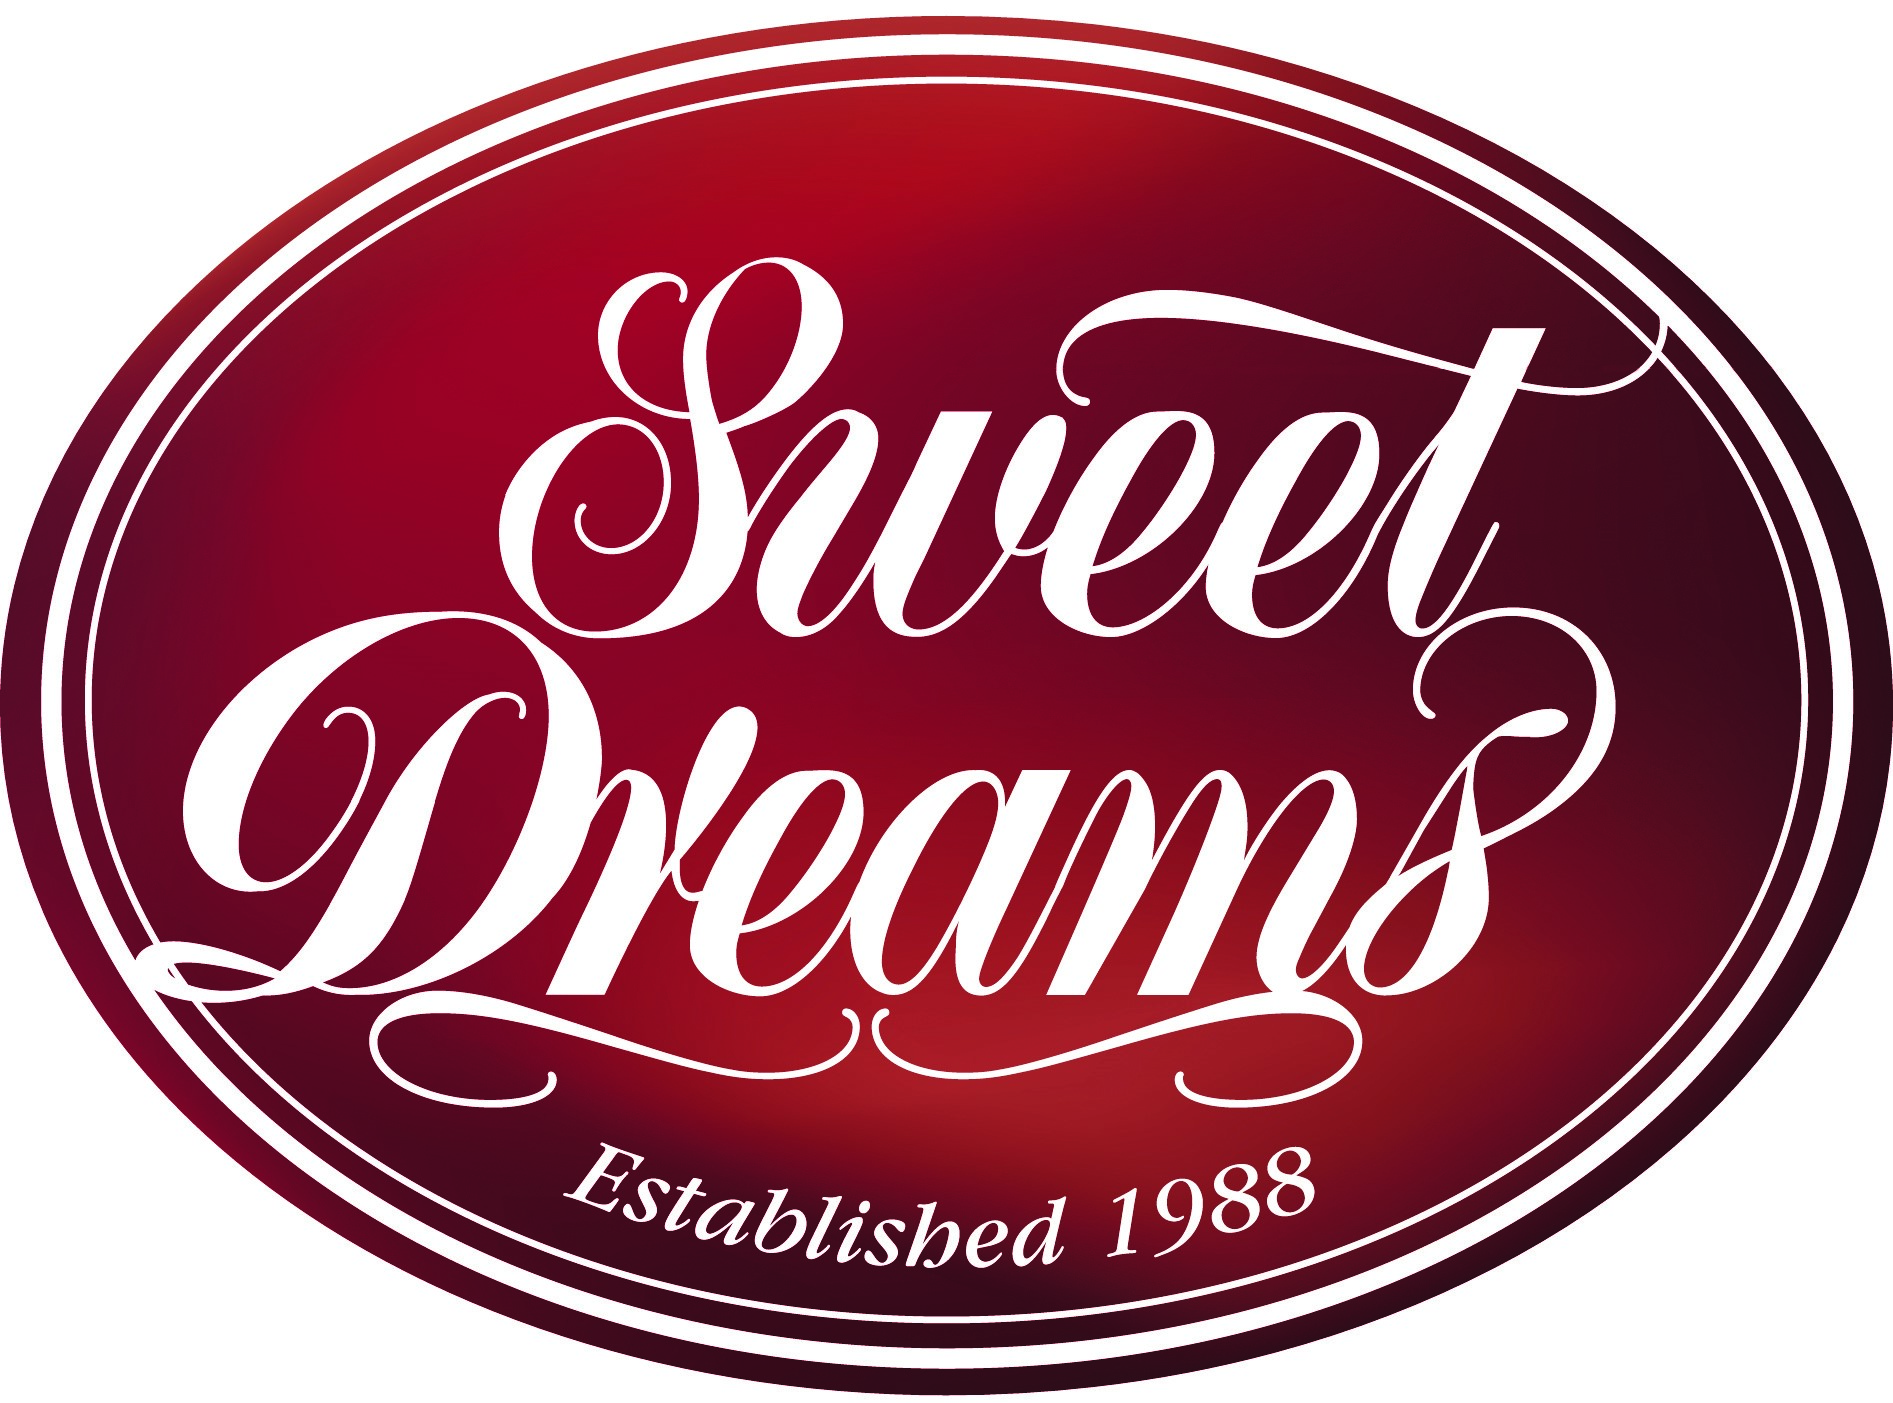 Key Account Managers - Sweet Dreams